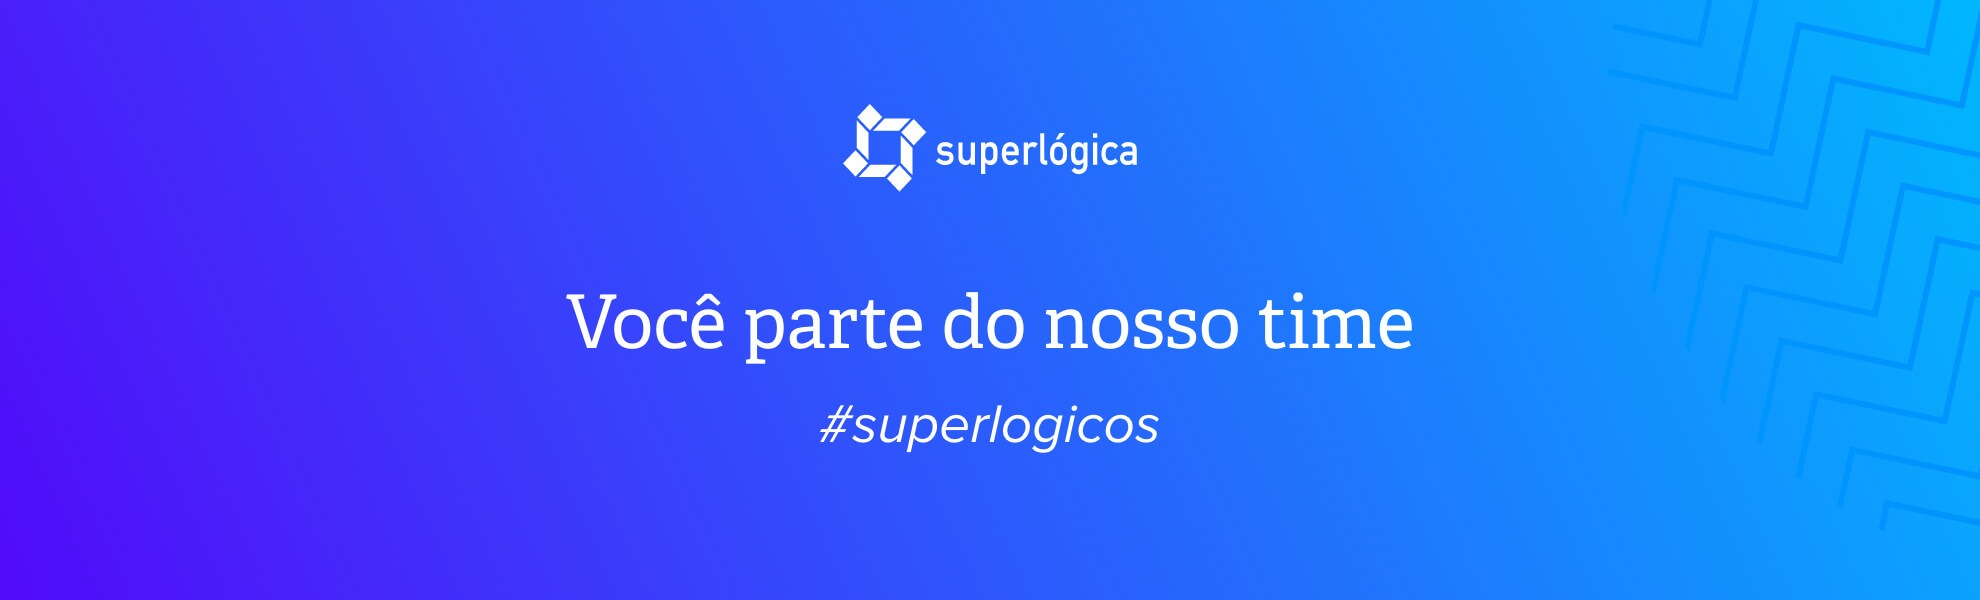 Analista de Marketing Pleno - Superlógica - Campinas